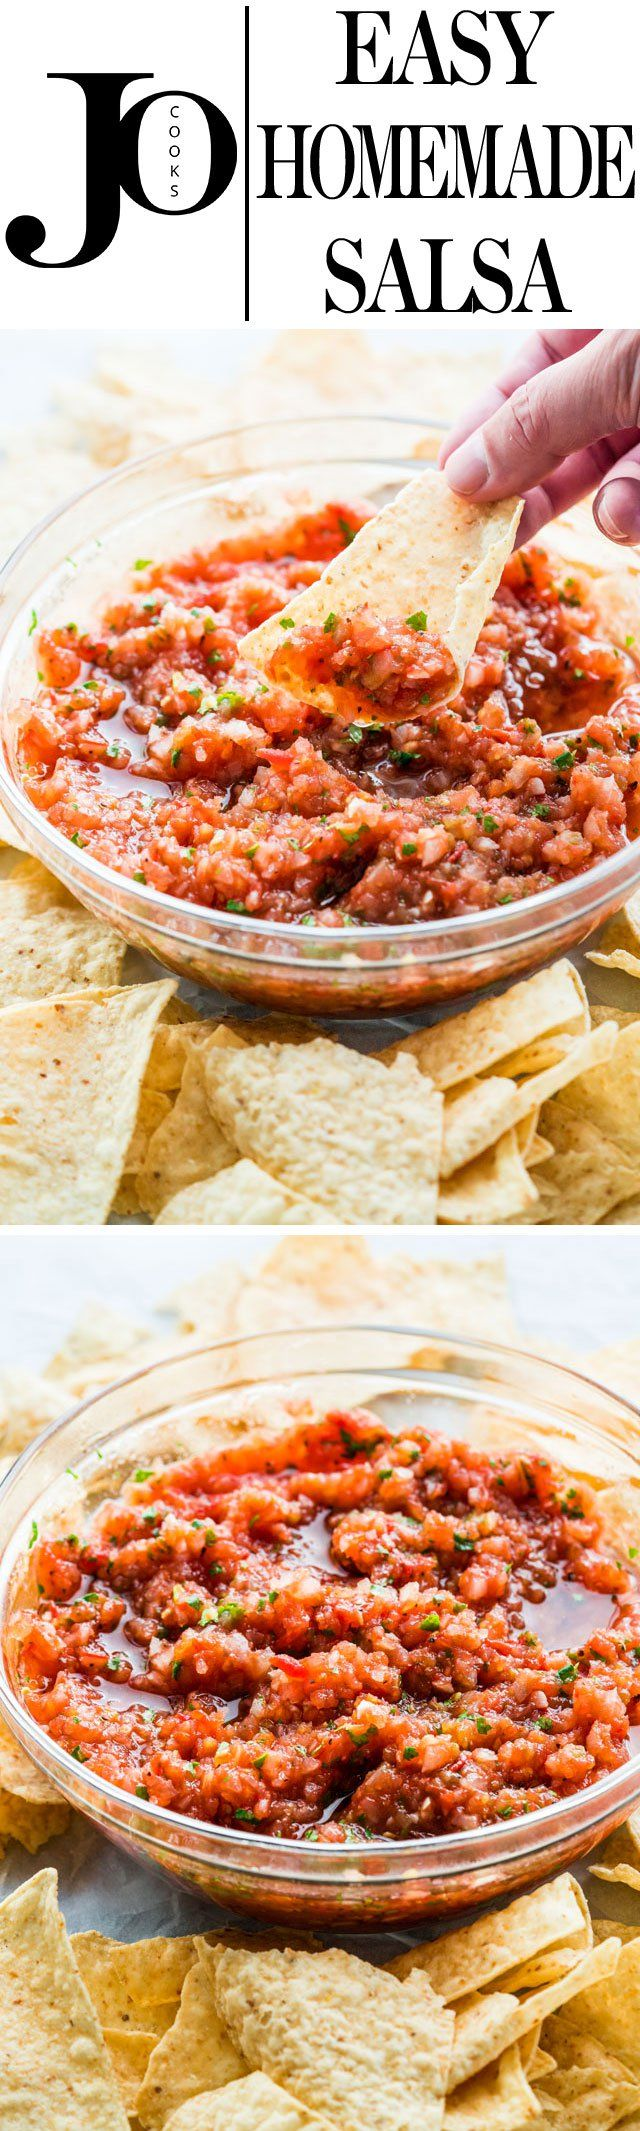 Homemade Salsa with fresh ingredients and full of flavor, just like the one you're served at your favorite restaurant! This restaurant style salsa is made with roasted tomatoes and onions which enhances all the flavors. Delicious and simple!